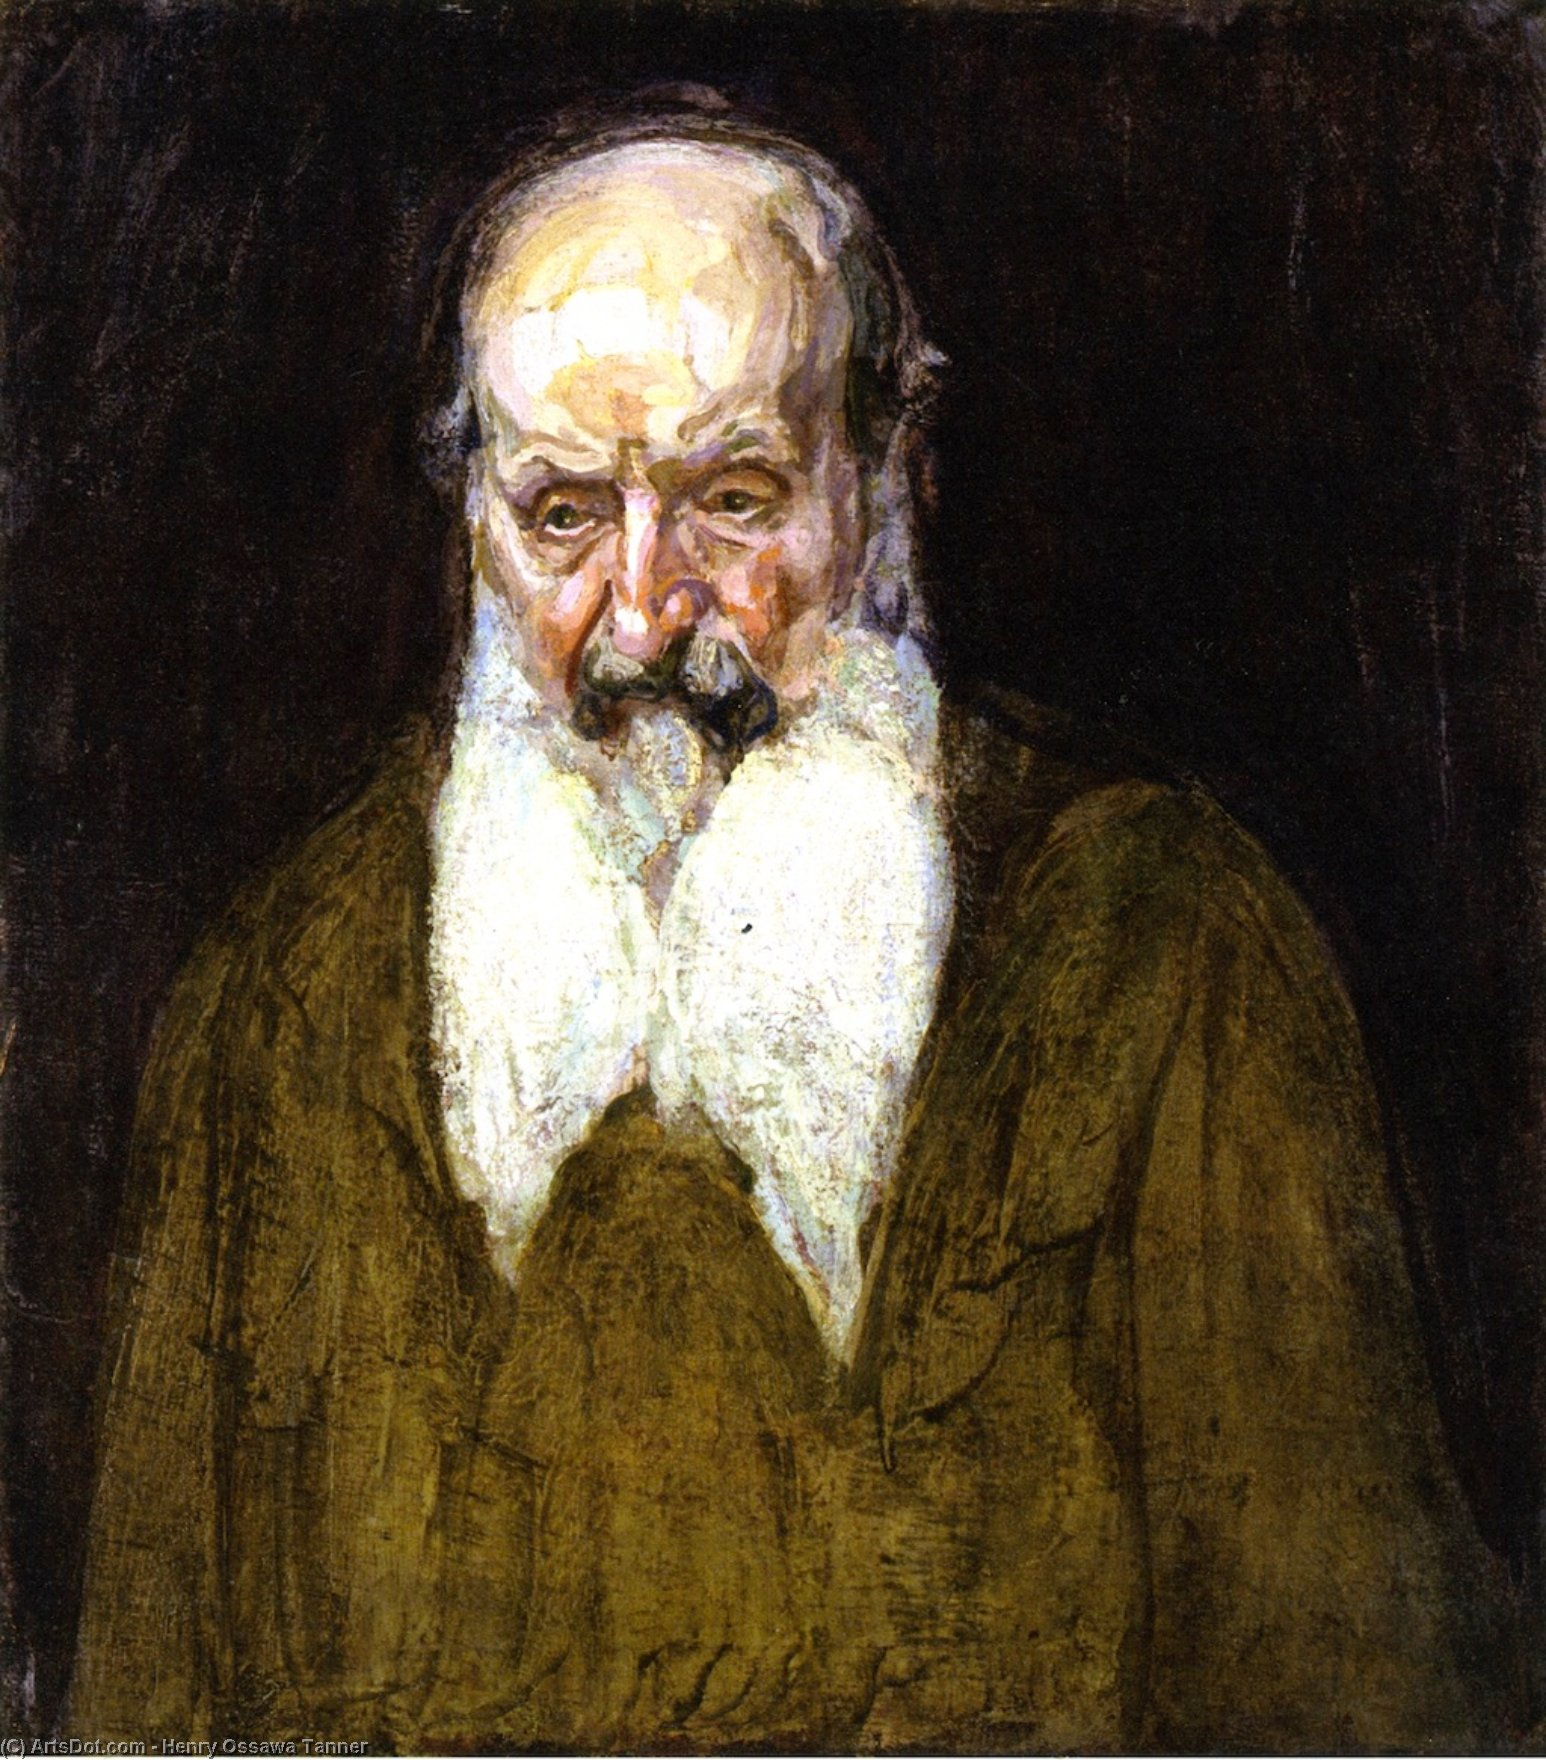 Head of a Jew in Palestine, Oil On Canvas by Henry Ossawa Tanner (1859-1937, United States)